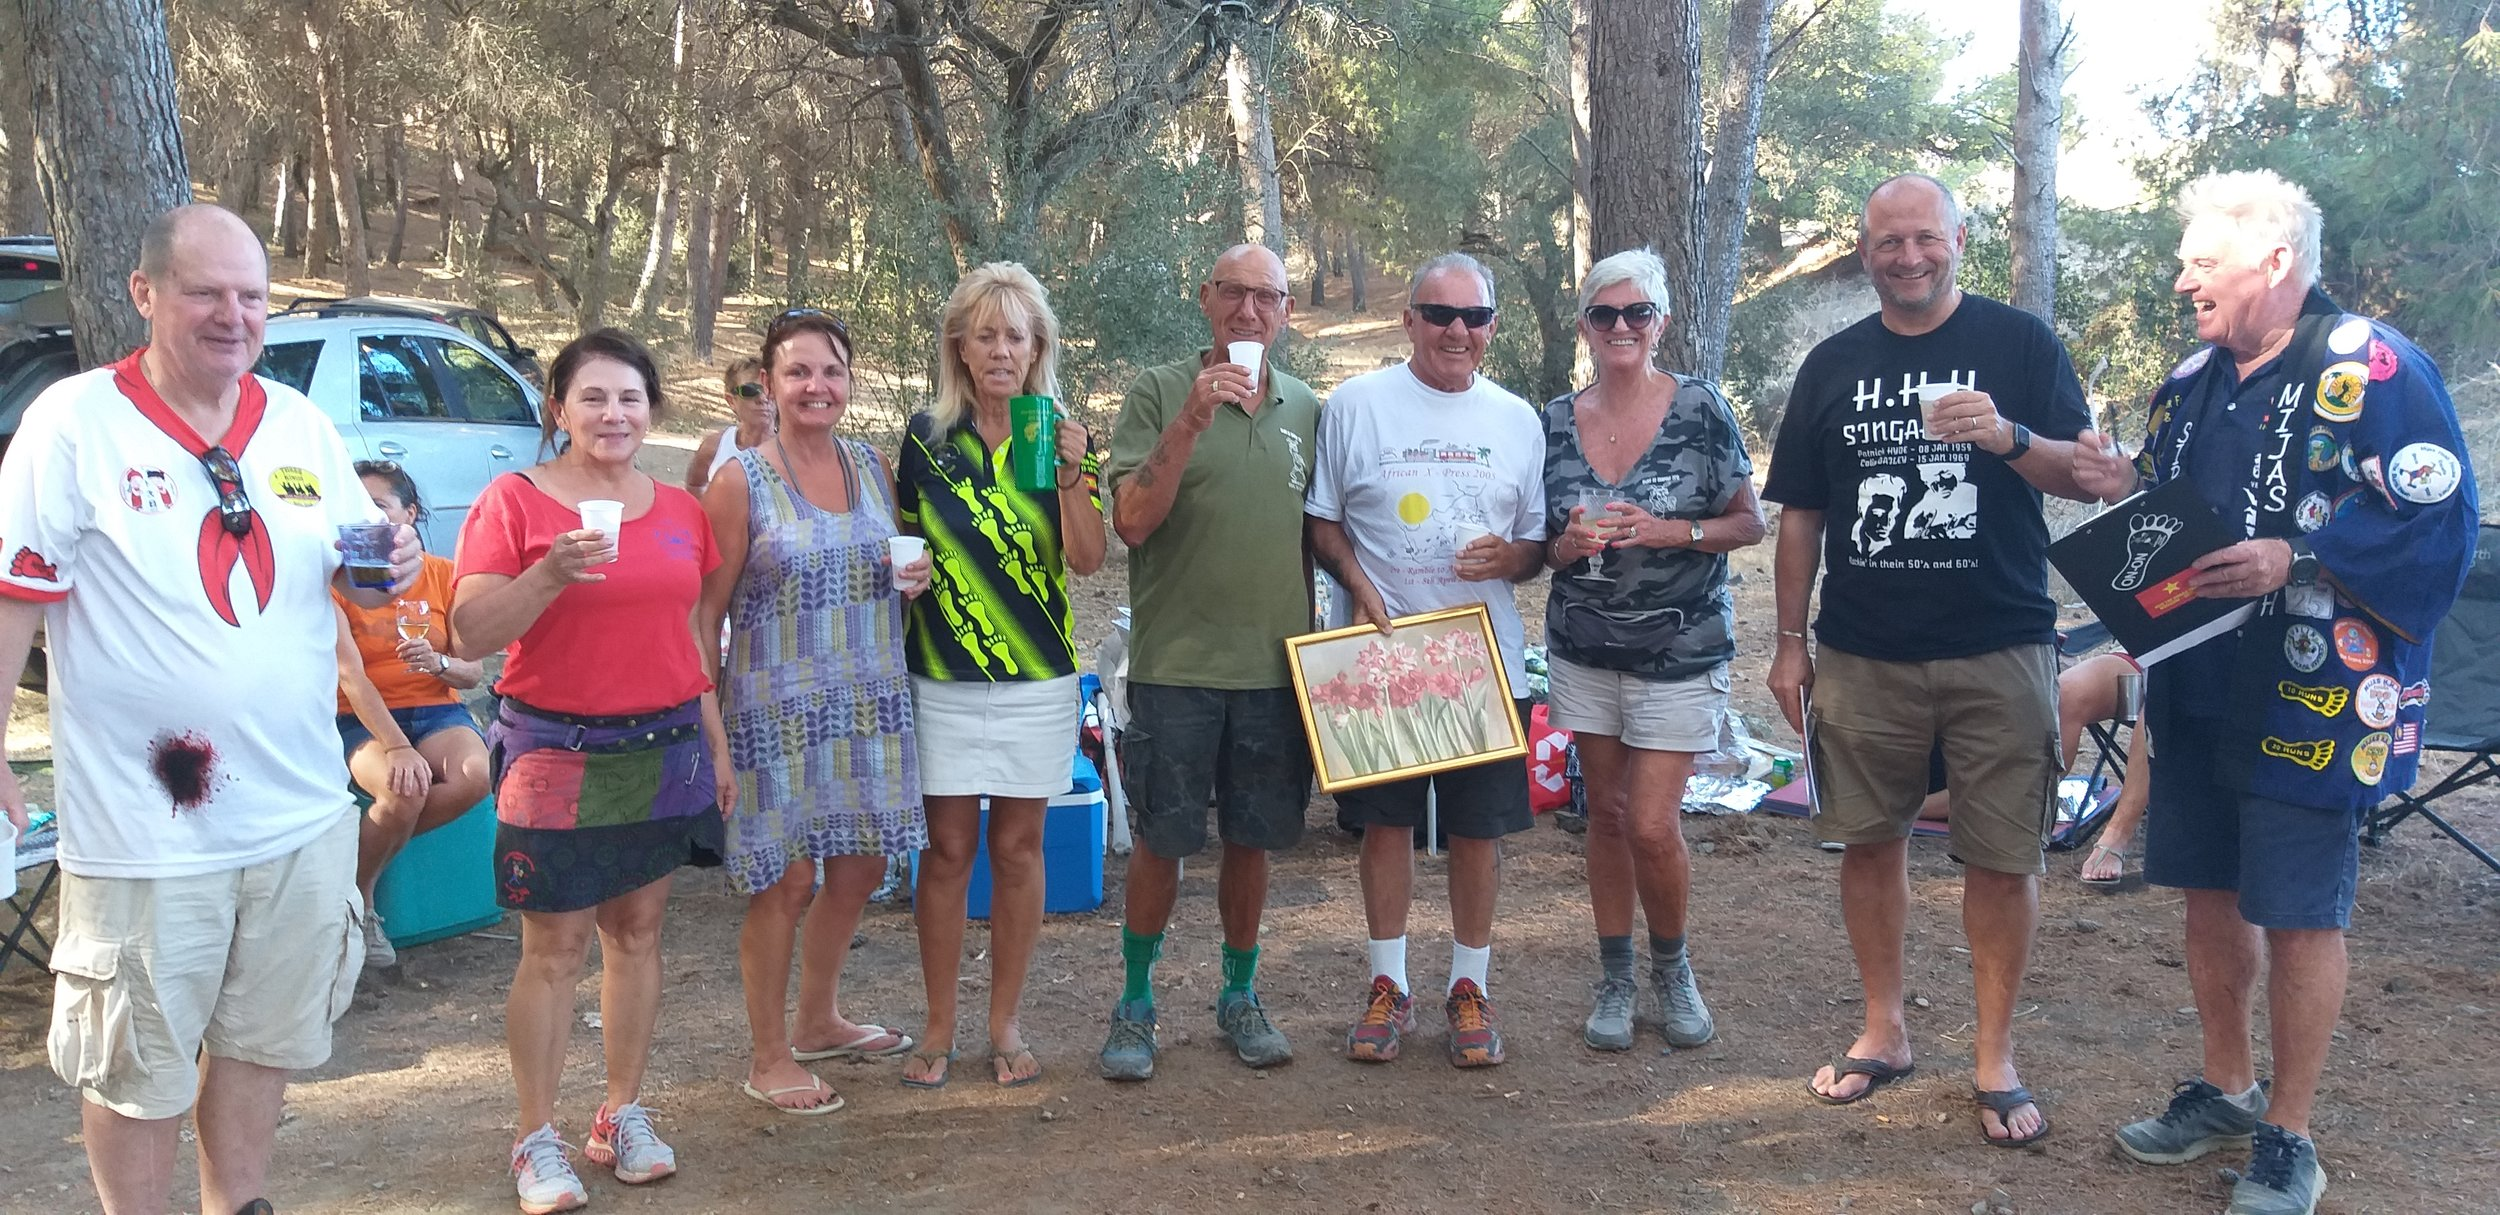 Mijas H3 - Hash Flash GC - Run 1650 - 28 Jul 2019 - Photo  18.jpg